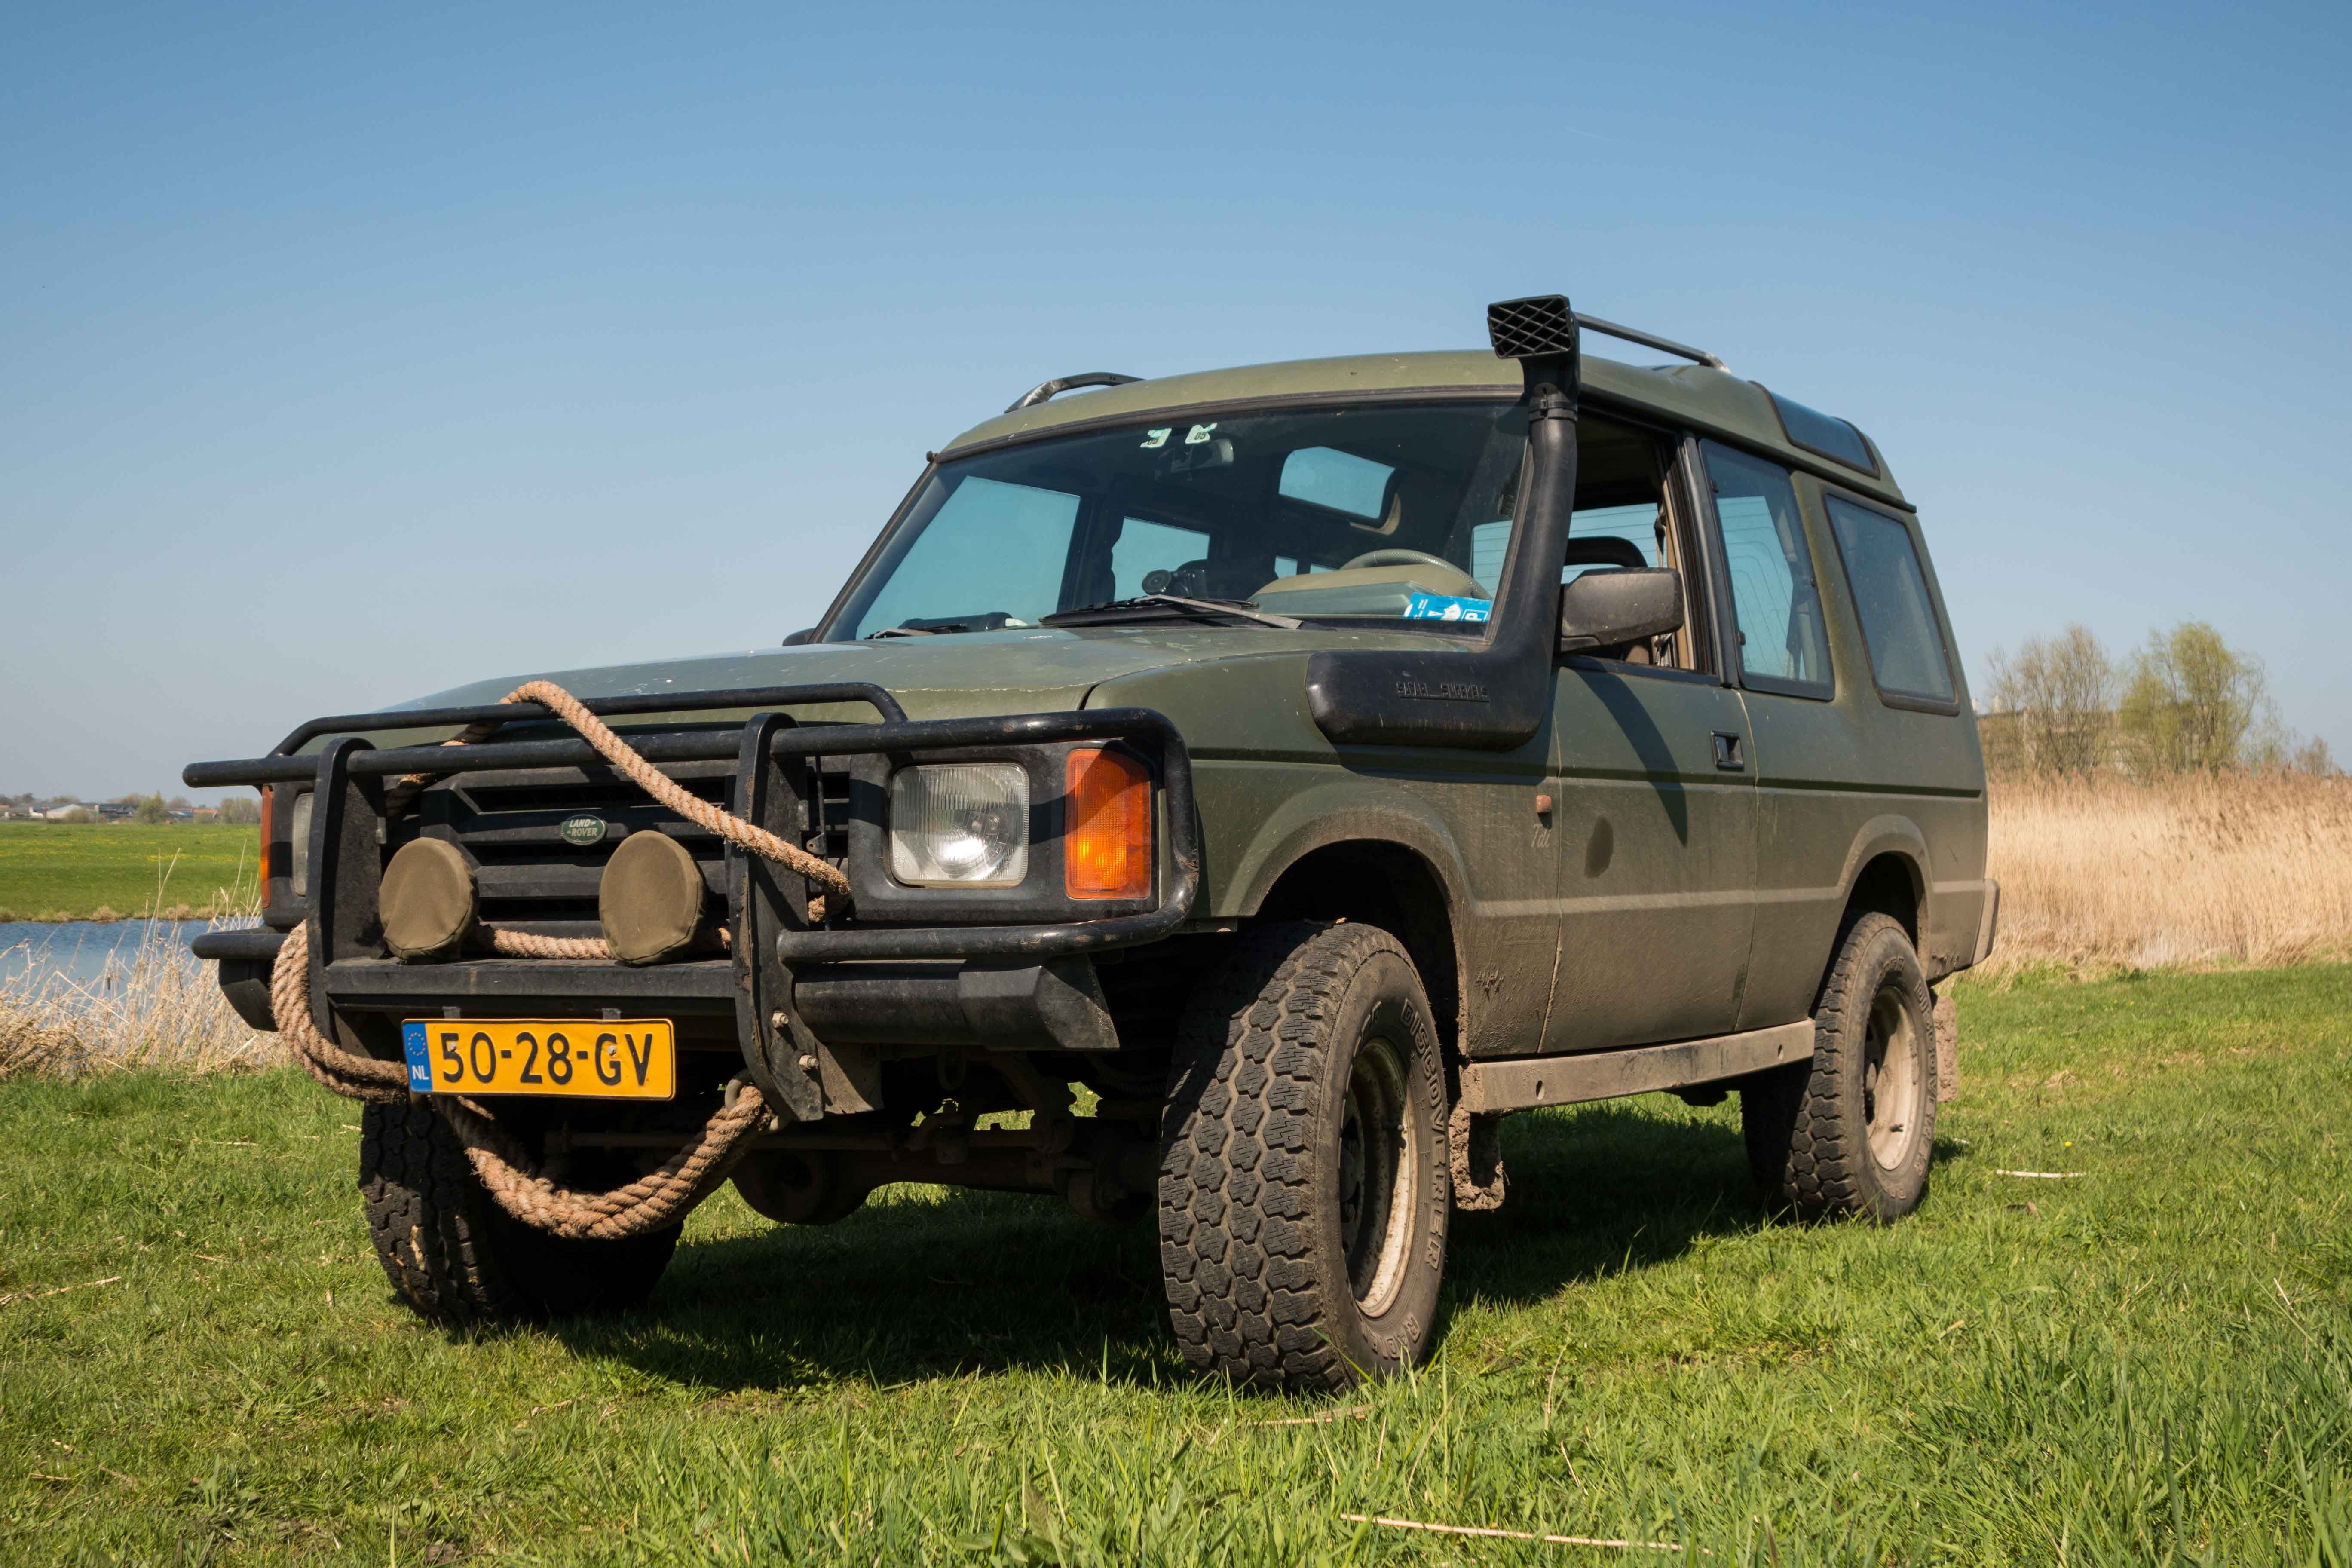 1992 Land Rover Discovery 200tdi Landrover Discovery 200tdi 4x4 Land Rover Discovery Land Rover Discovery 1 Land Rover